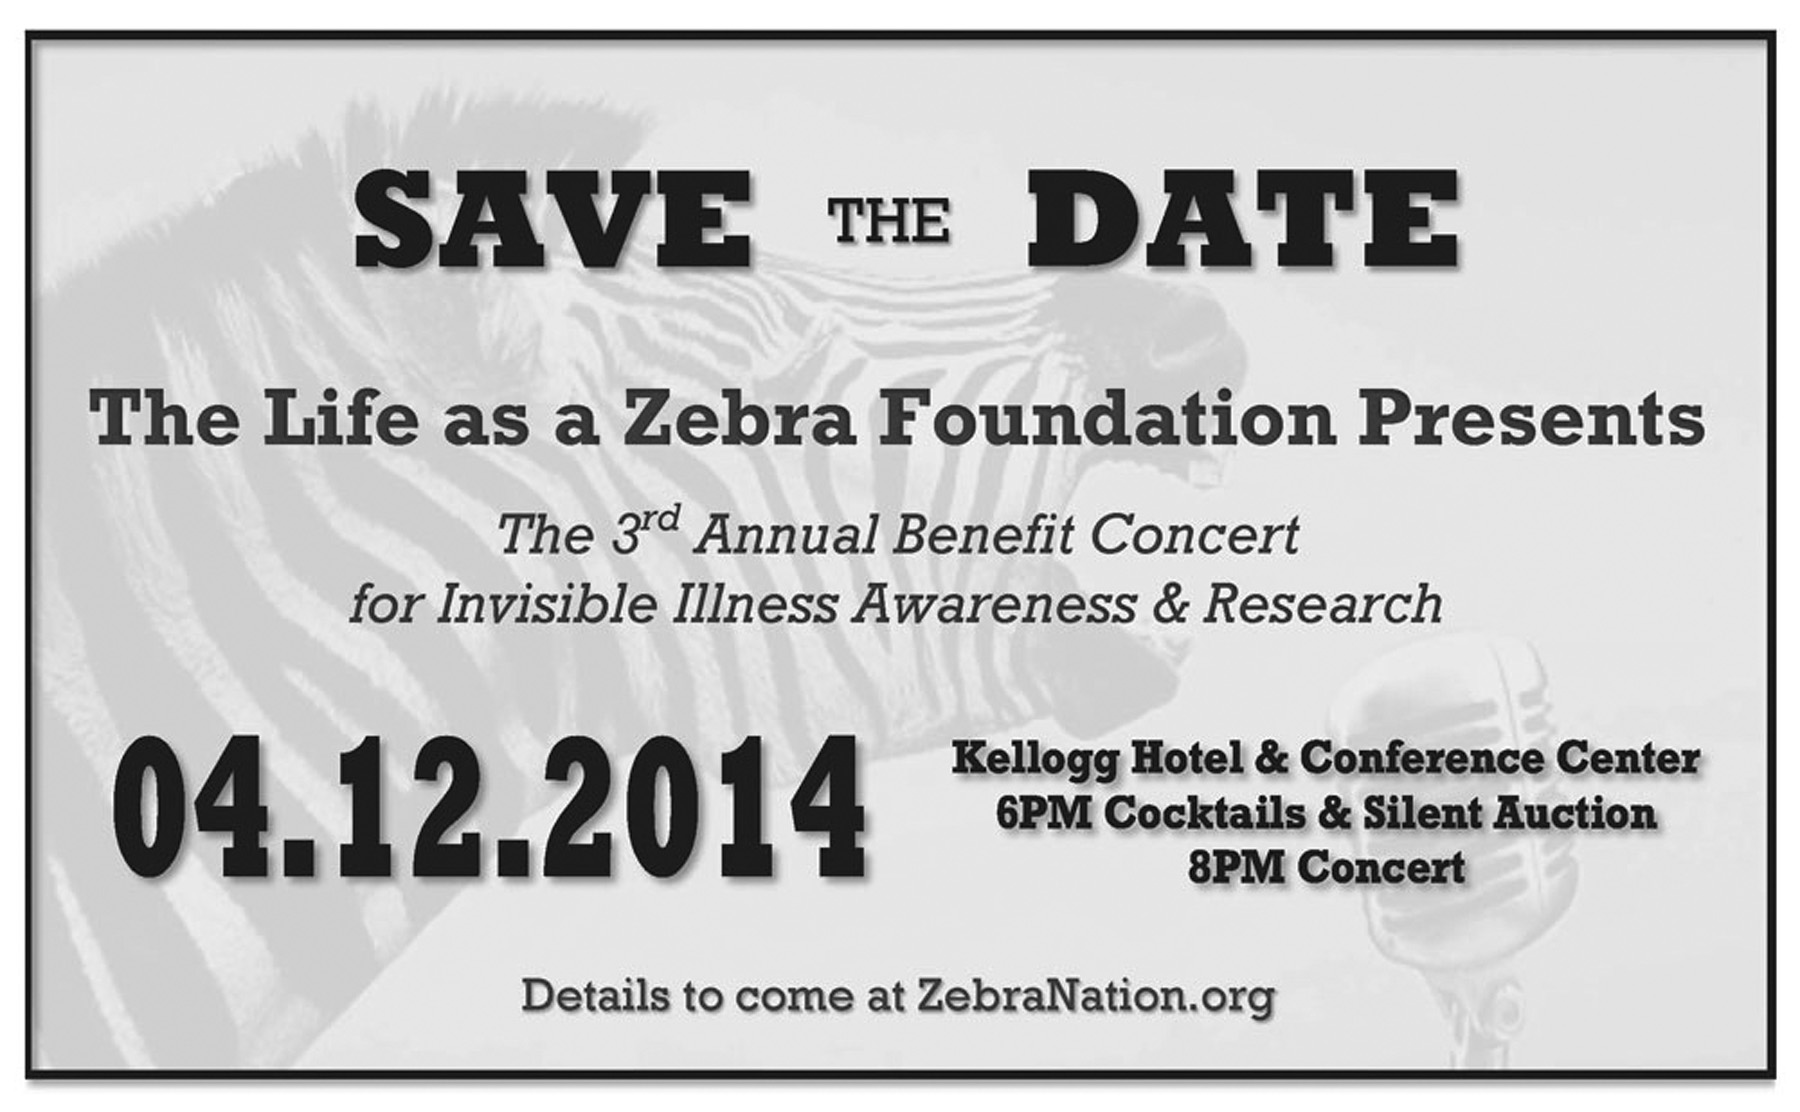 LifeasaZebraeventsave-the-date-2014